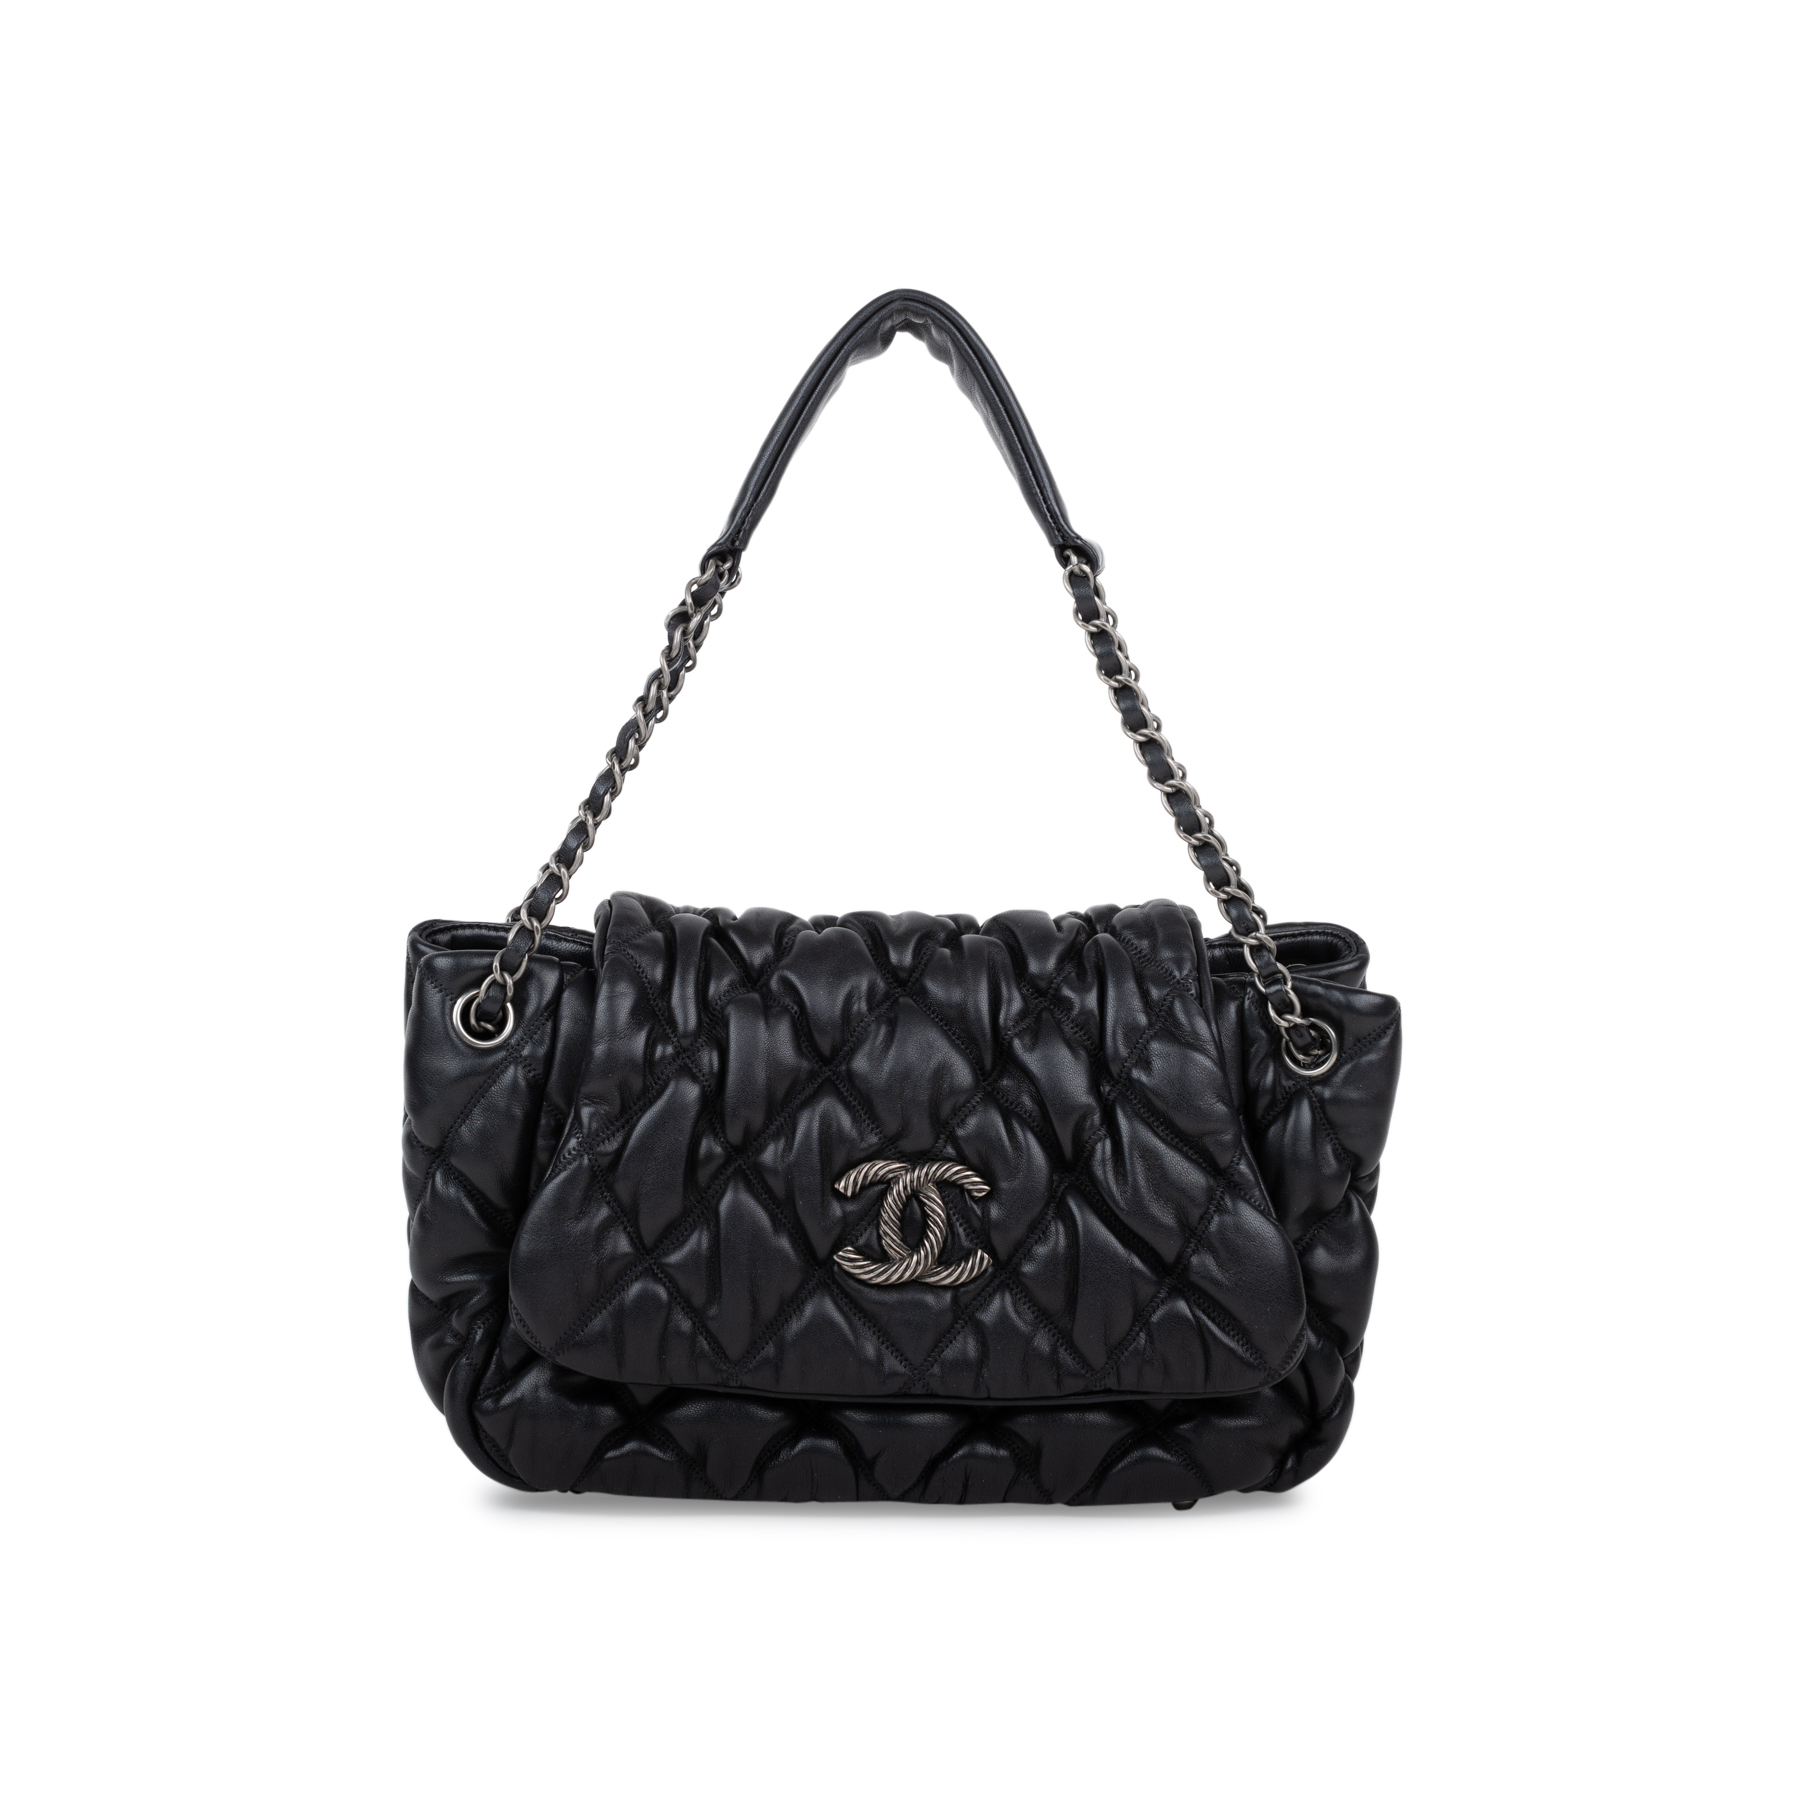 e60a20ea3d48 Authentic Second Hand Chanel Bubble Quilt Accordion Flap Bag  (PSS-566-00007) | THE FIFTH COLLECTION